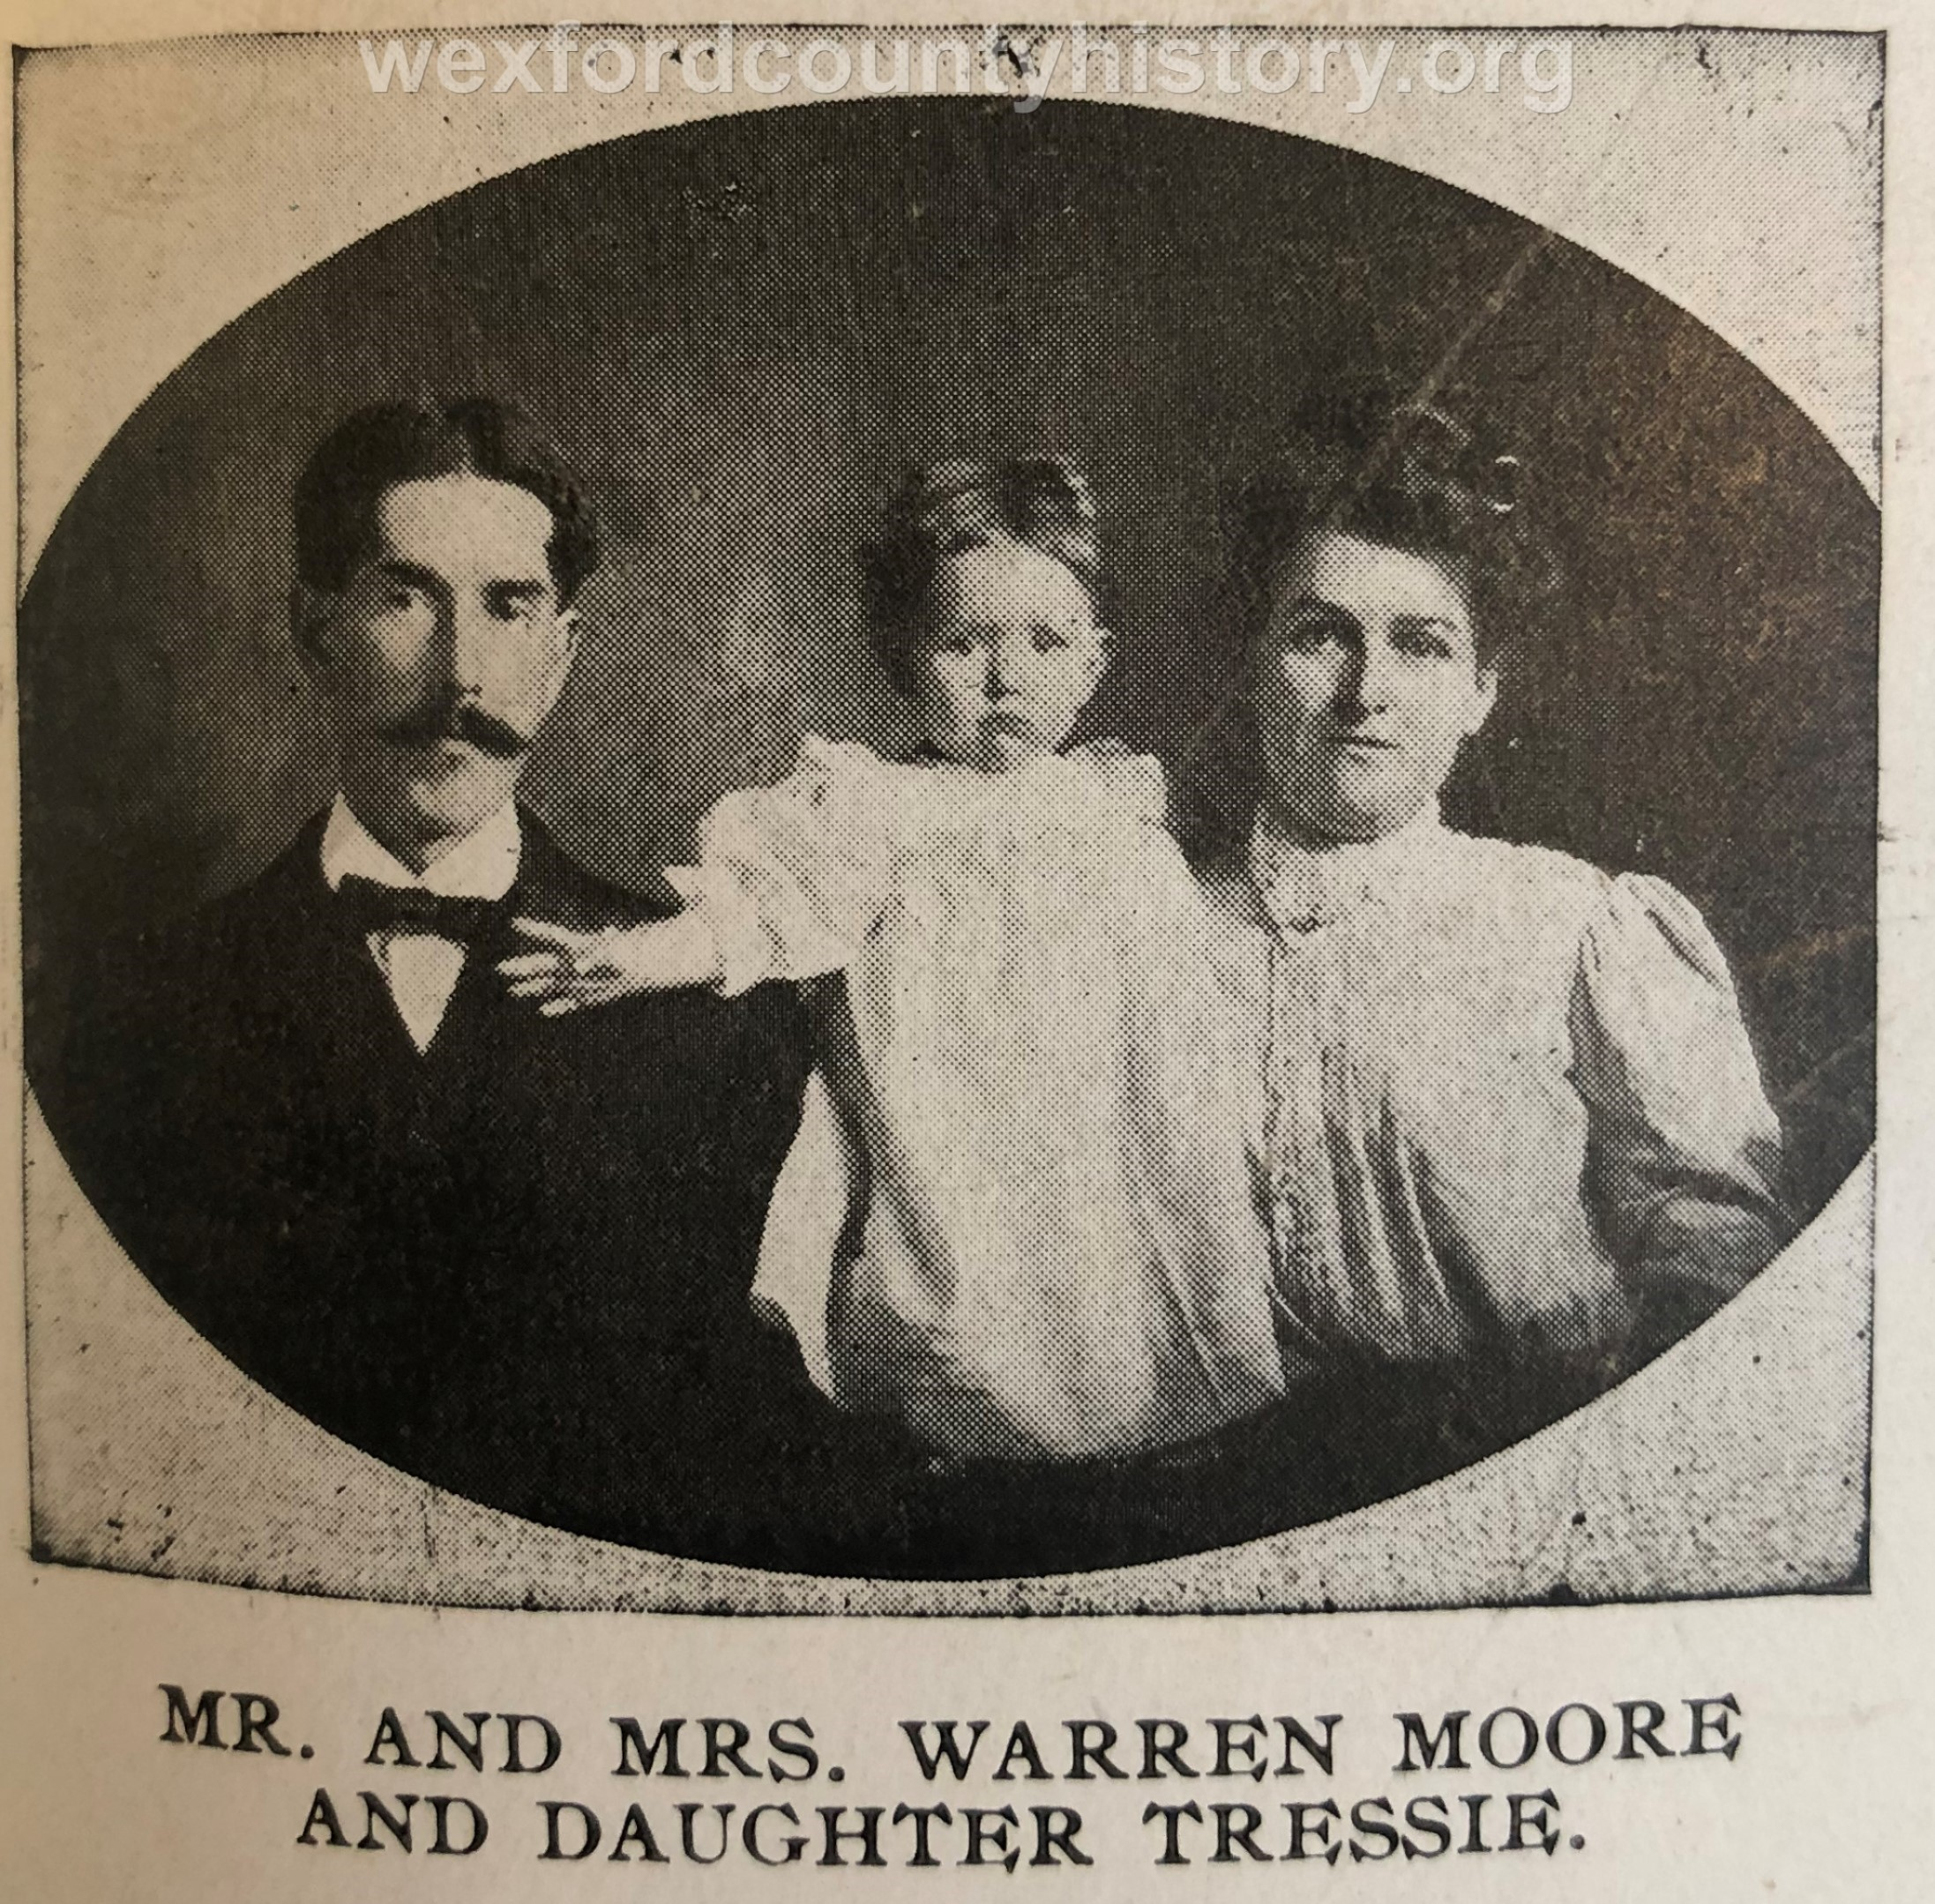 Mr. And Mrs. Warren Moore and Daughter Tressie